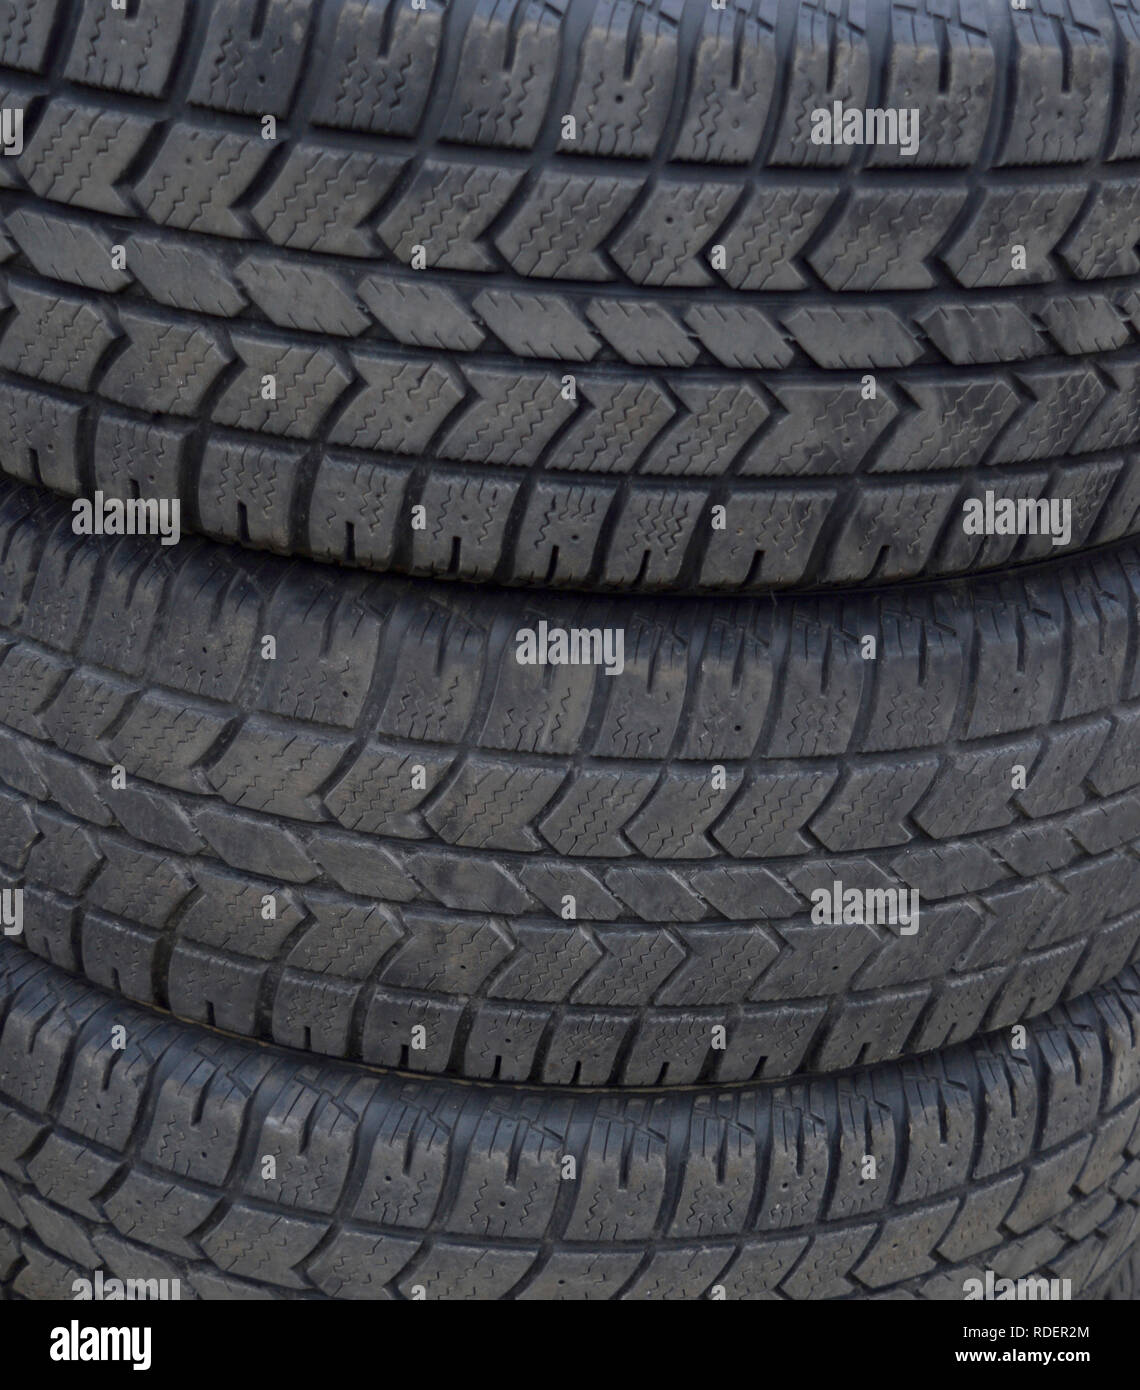 3 tires for a car or truck stacked.  Reminder that tires may need to be change. Stock Photo